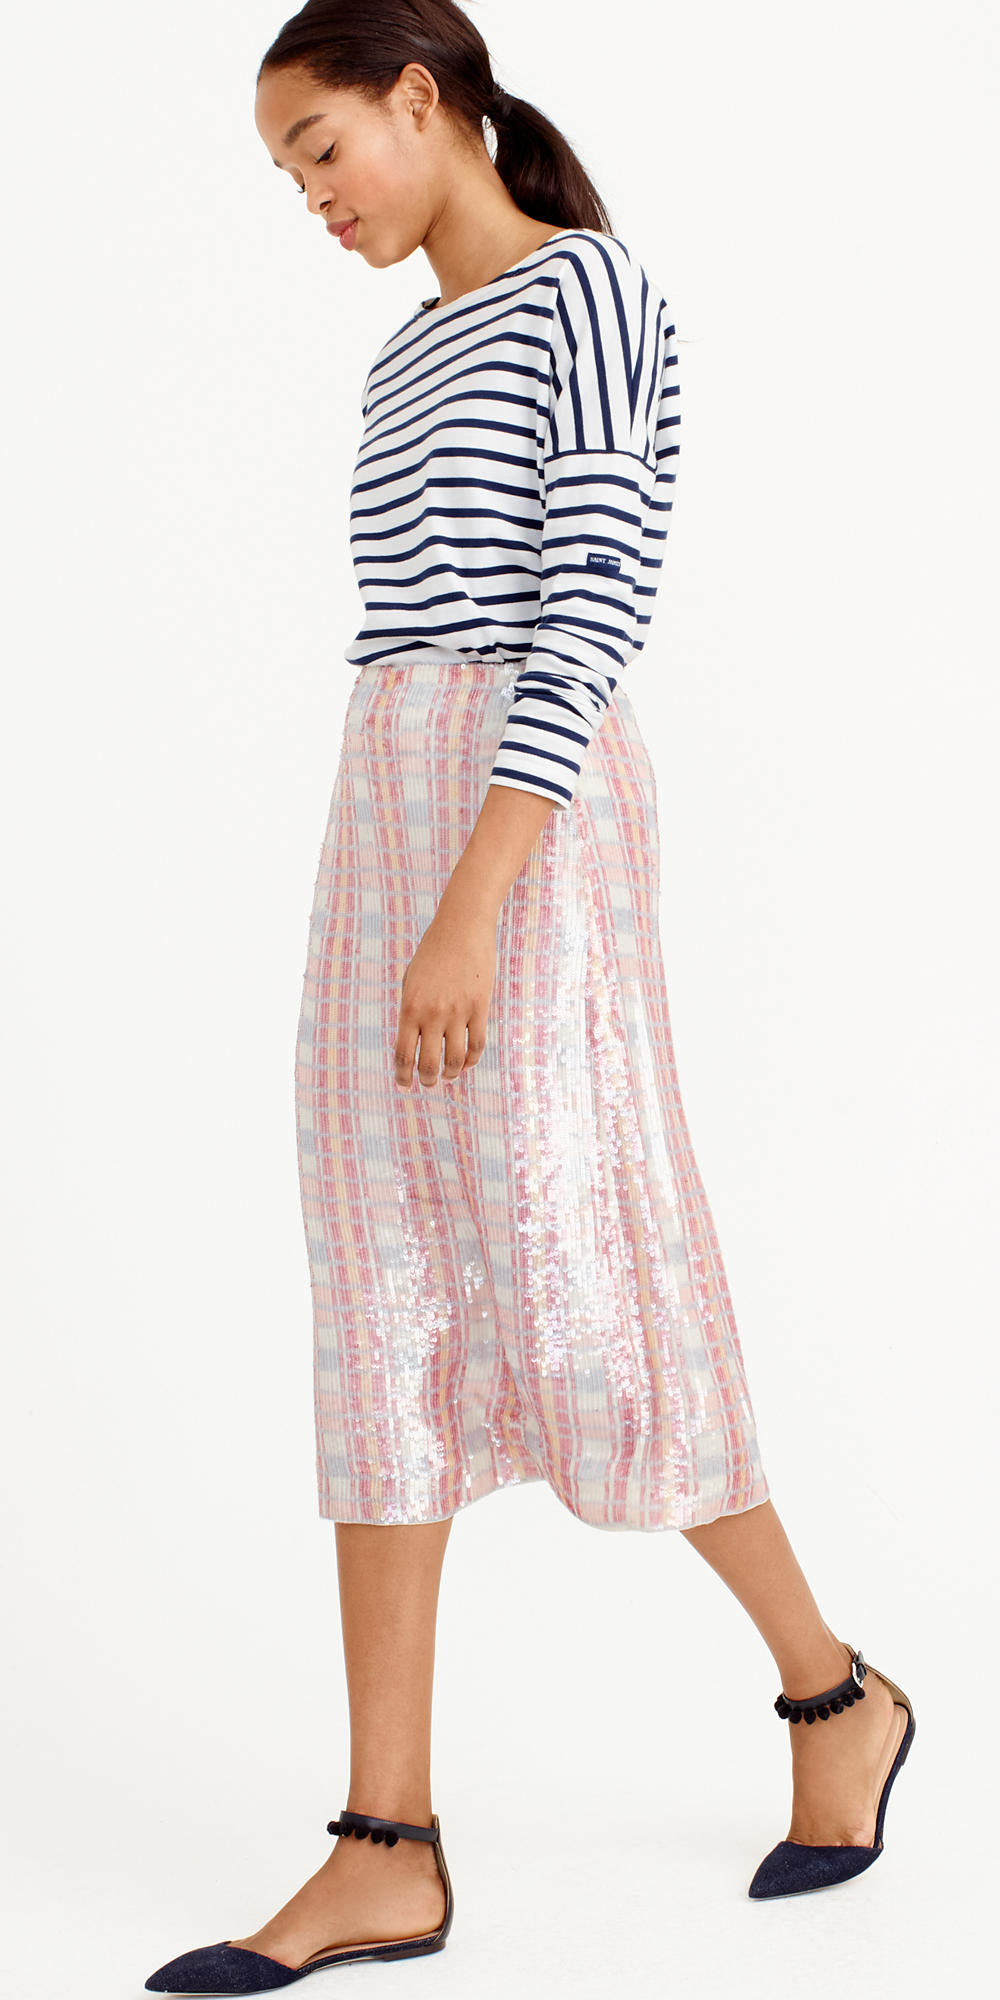 pink-light-midi-skirt-blue-navy-tee-stripe-brun-blue-shoe-flats-spring-summer-lunch.jpg